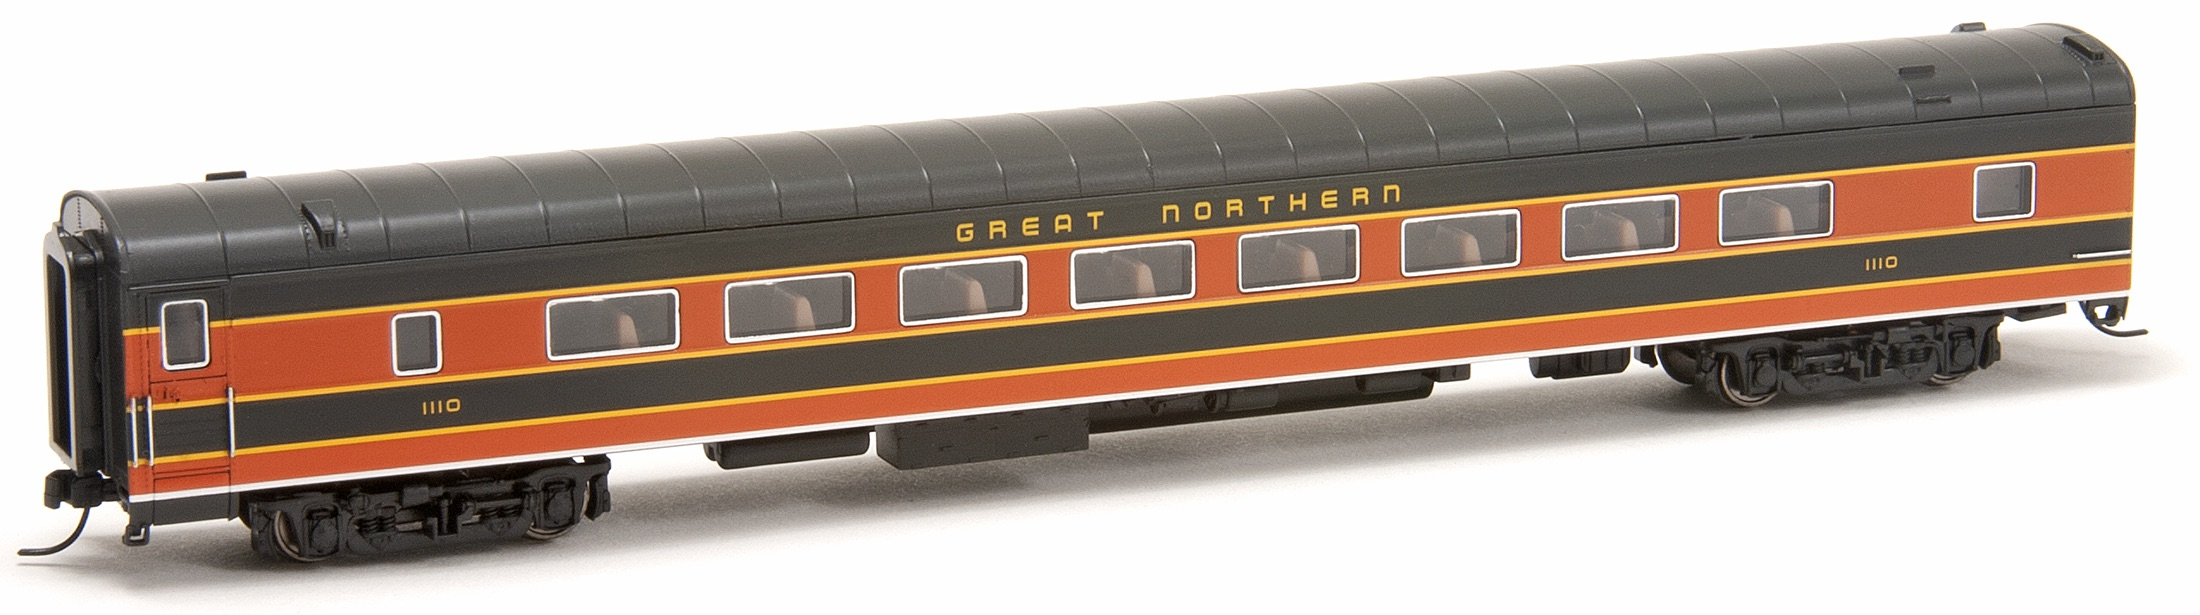 N Scale - RailSmith - 5501818 - Passenger Car, Lightweight, Pullman, Coach, 64-Seat - Great Northern - 1110